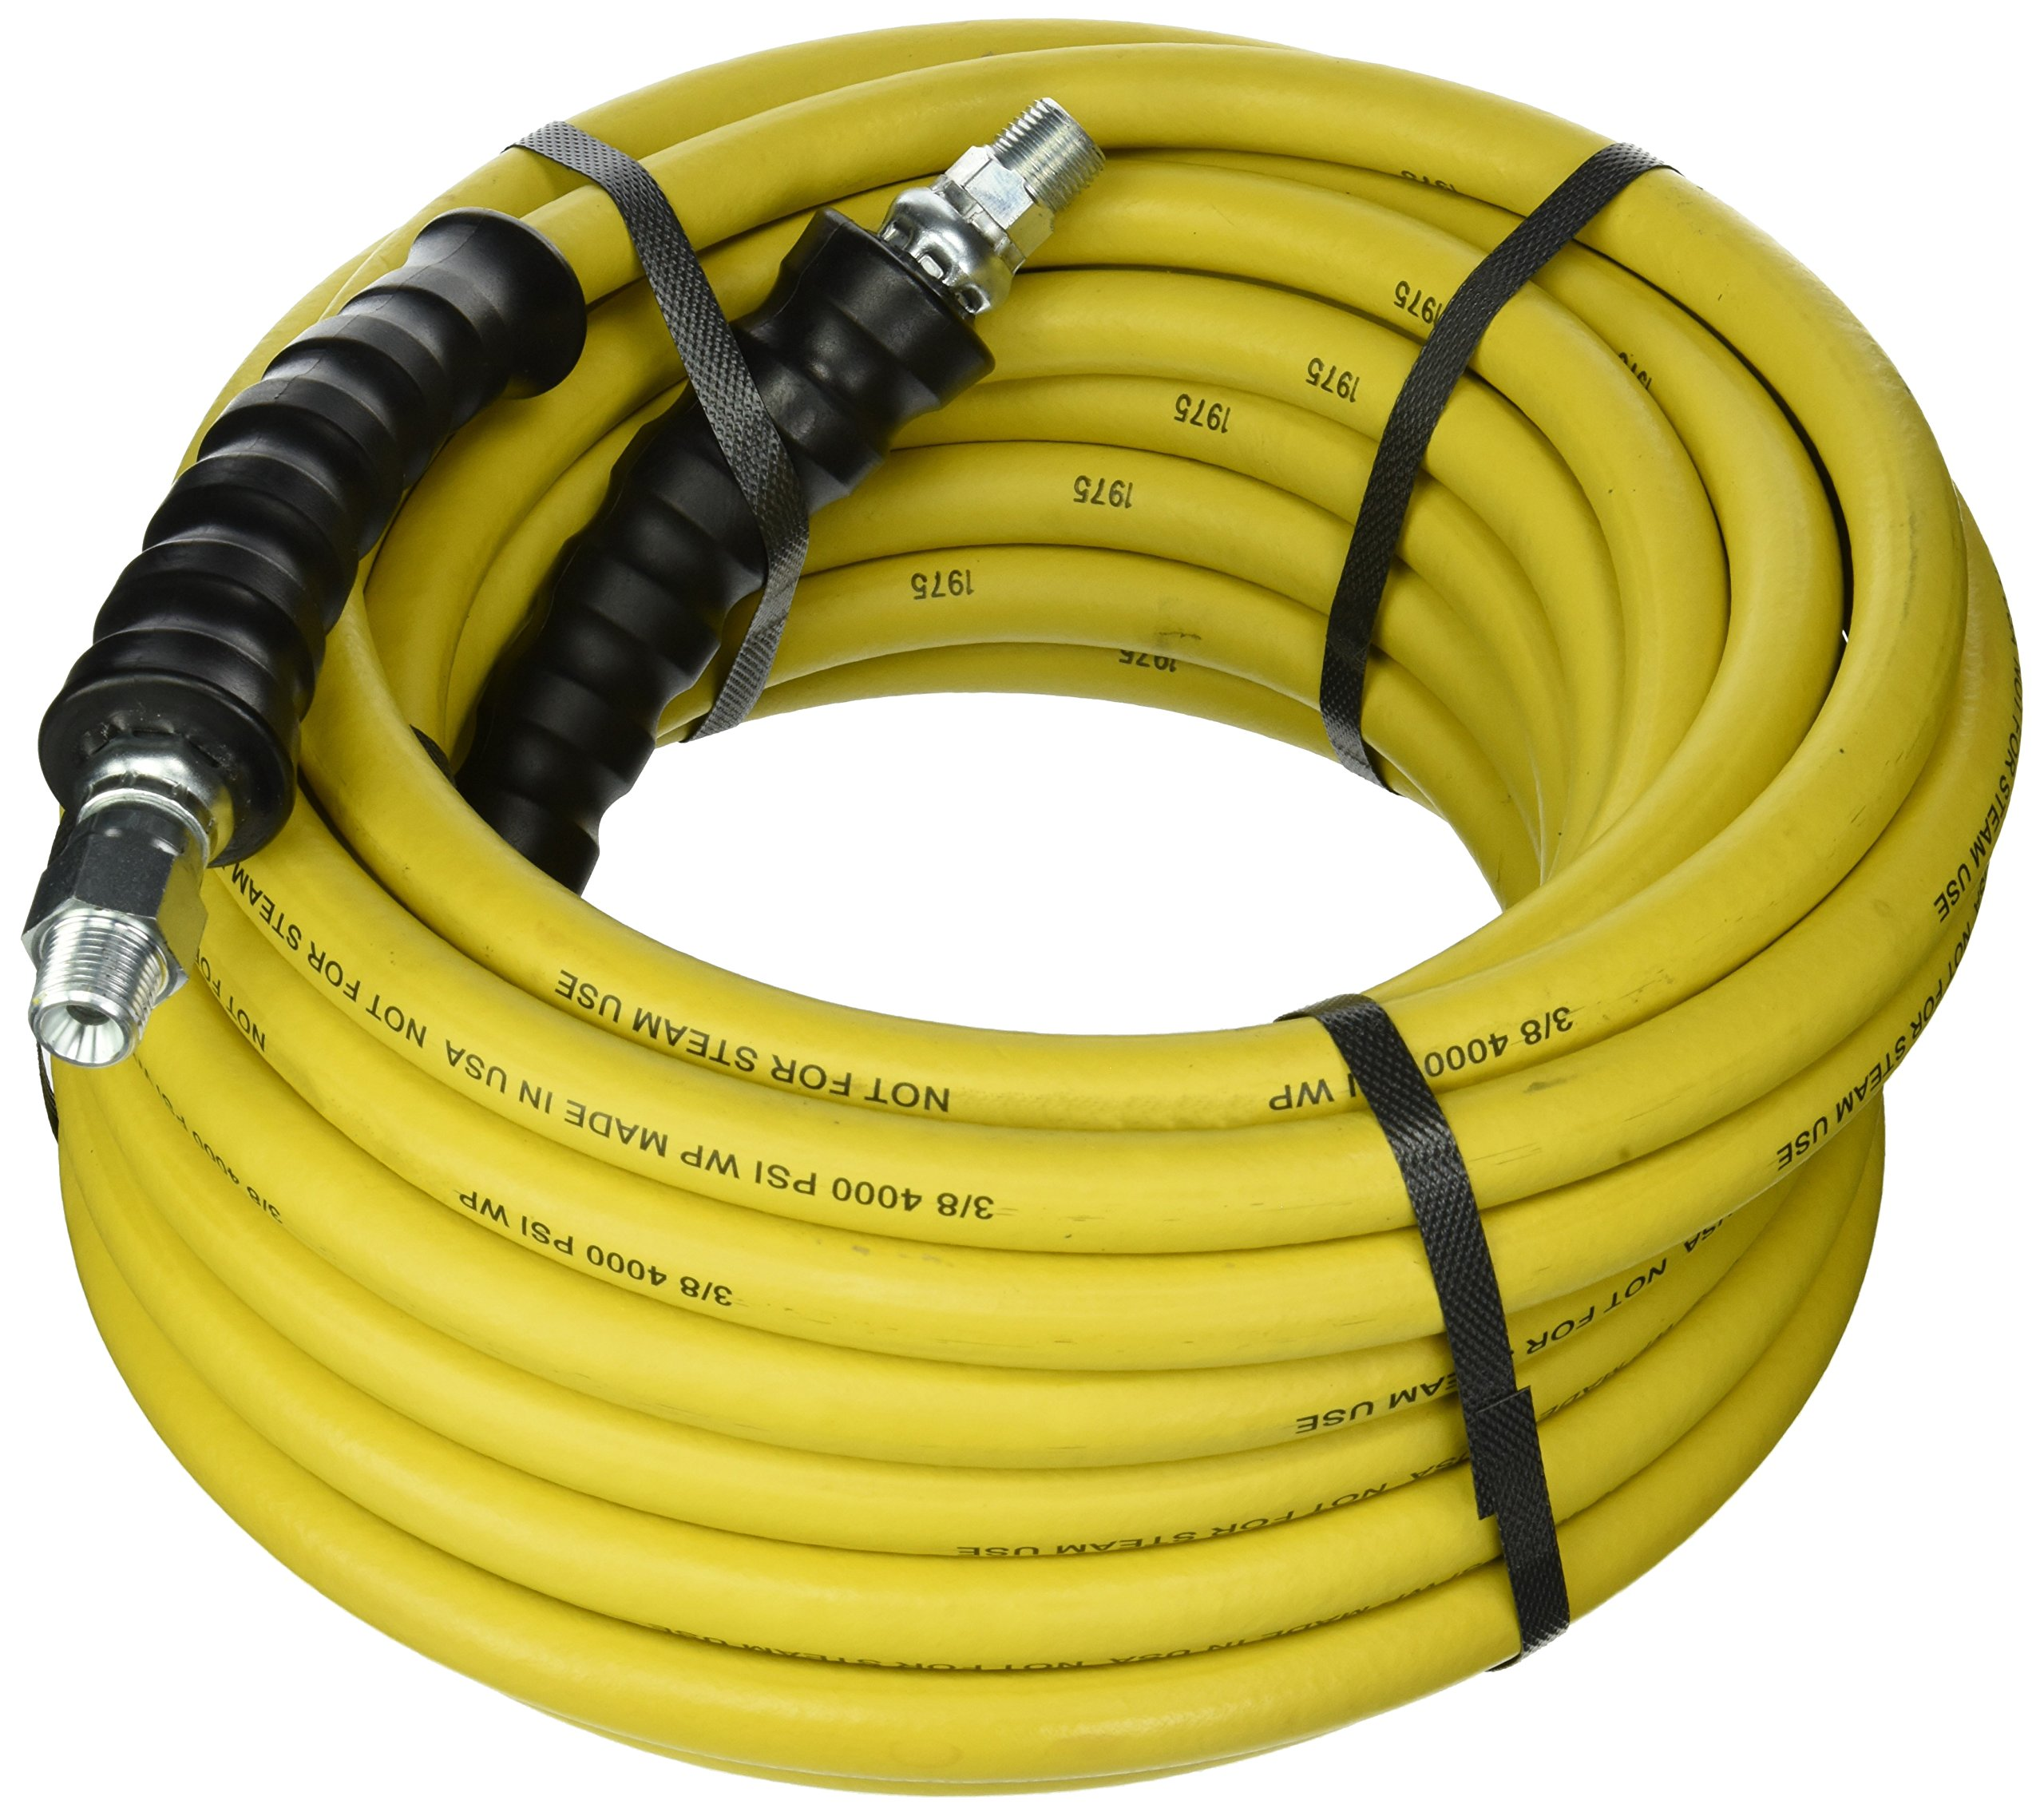 Good Year 12630 Rubber Pressure Washer Hose, 50' x 3/8'', Yellow